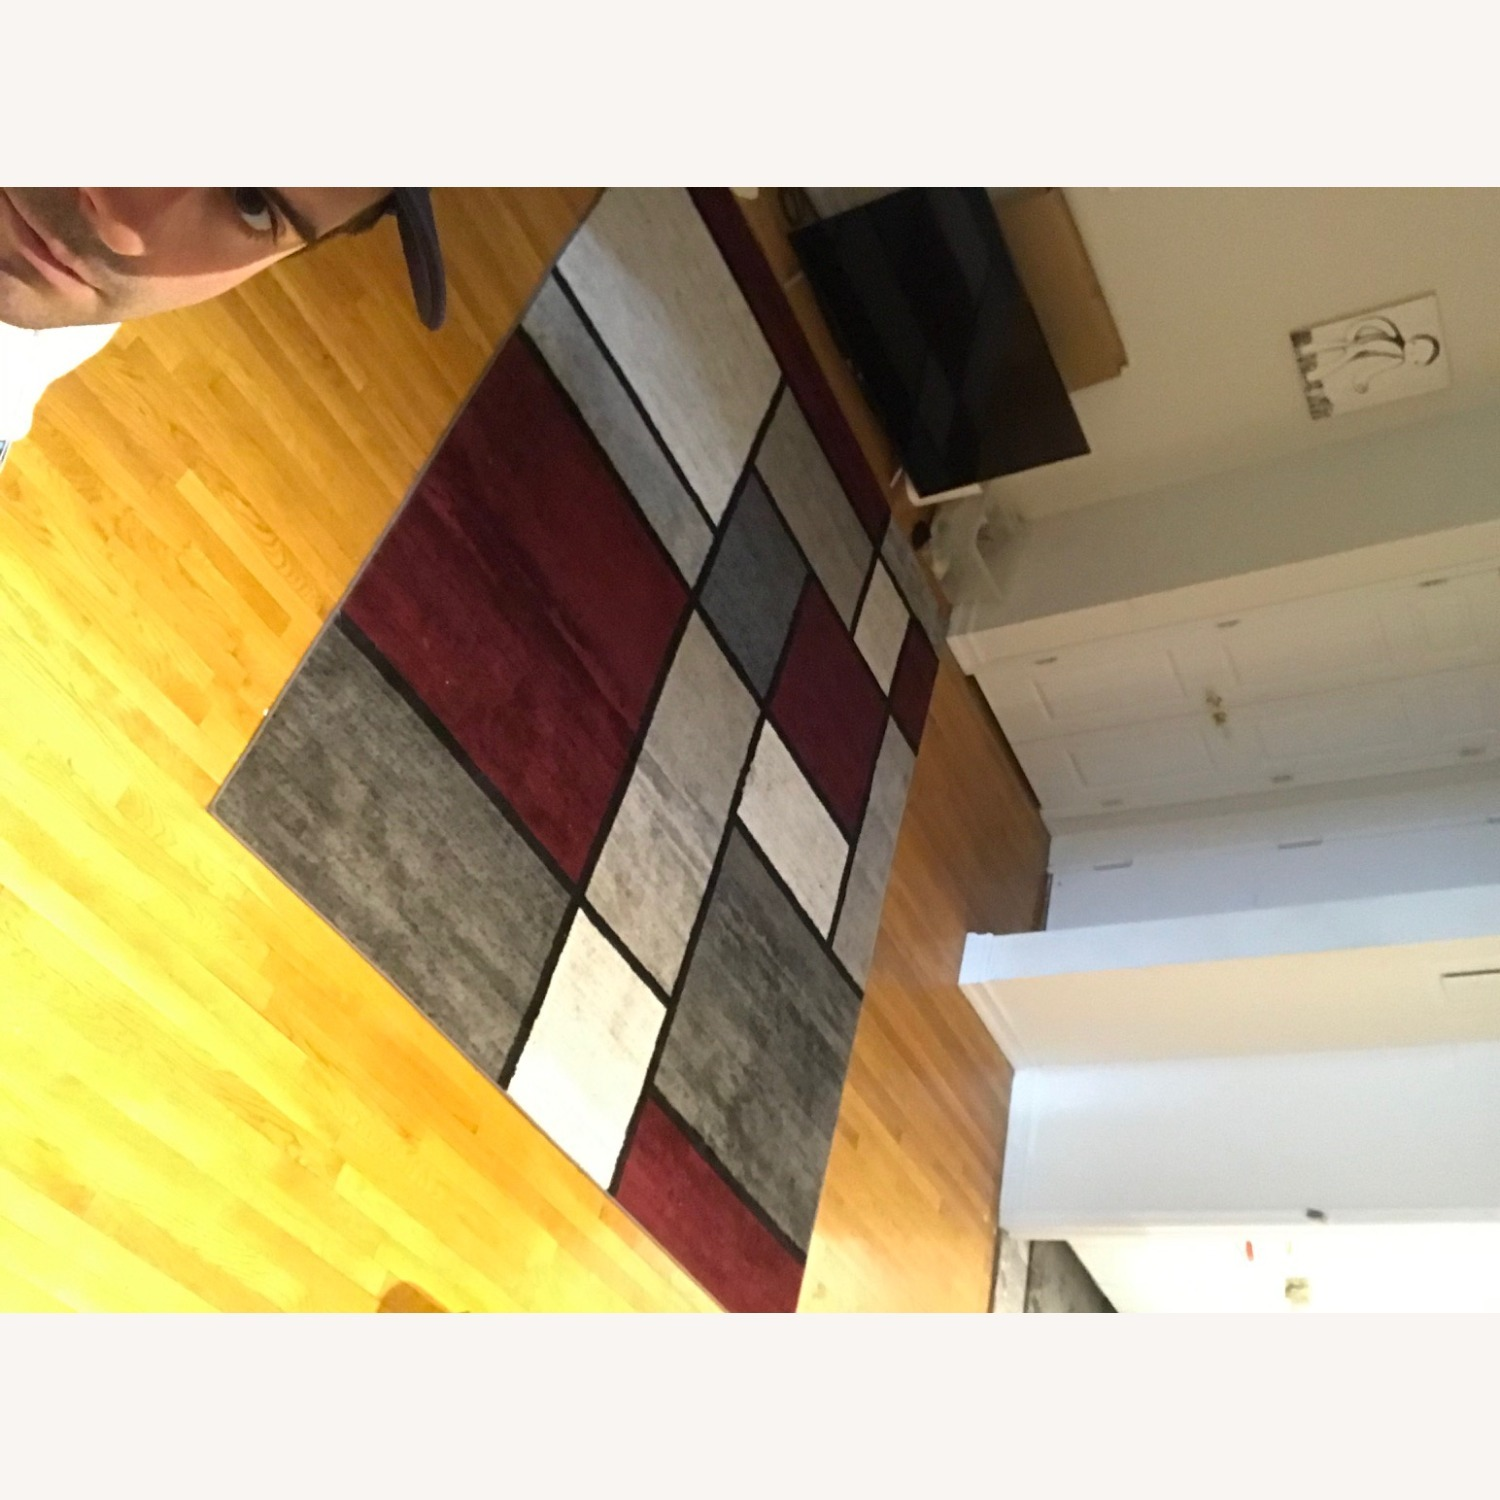 8' x 10' Red White and Grey Area Rug w Rug Pad - image-16